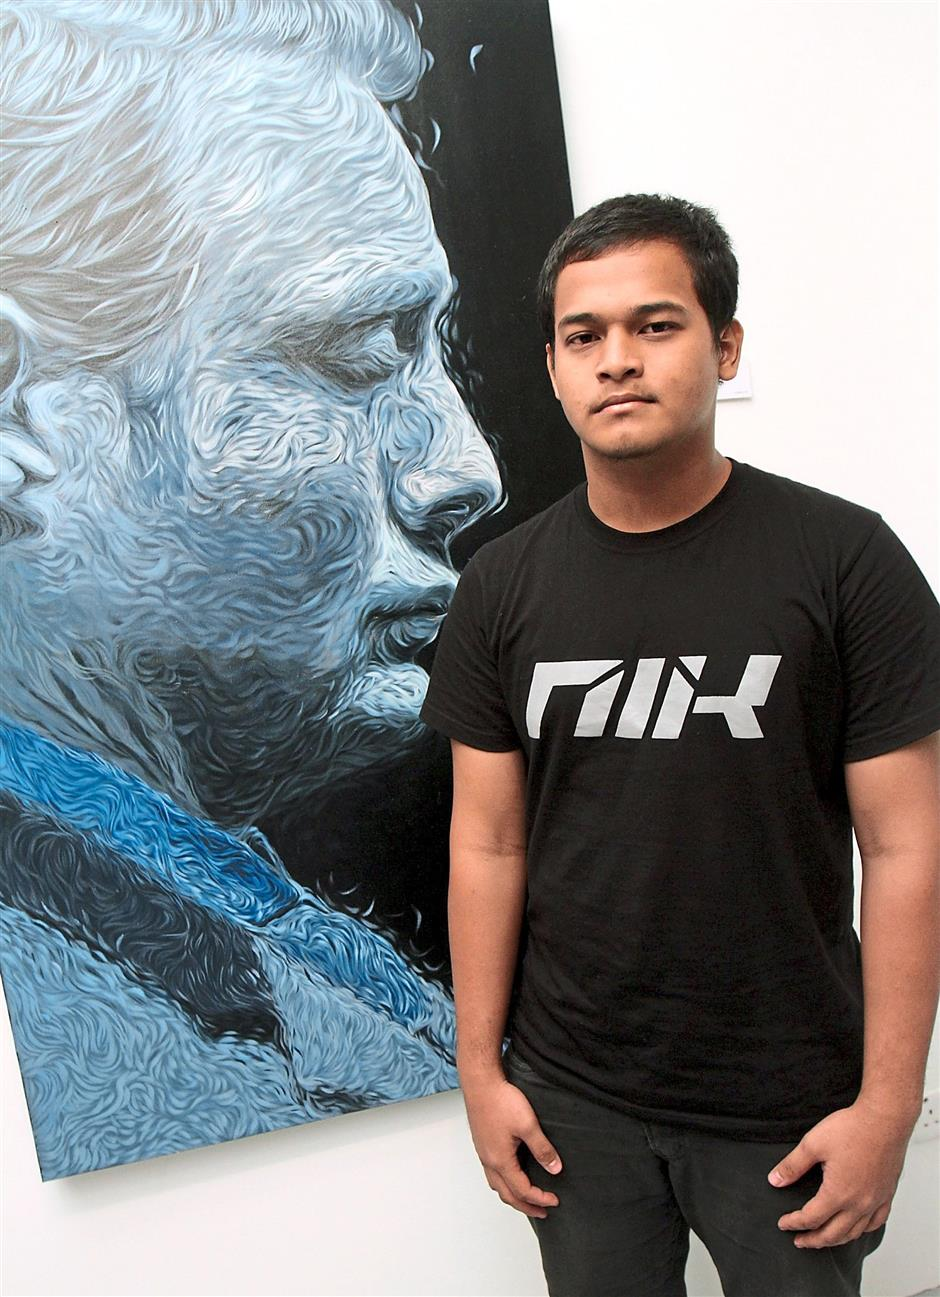 Middle-child: Nik Mohd Shahfiz with 'Mikkelsen in Blue, a painting of Mads Mikkelsen, who plays Dr Hannibal Lecter, in TV's 'Hannibal'.